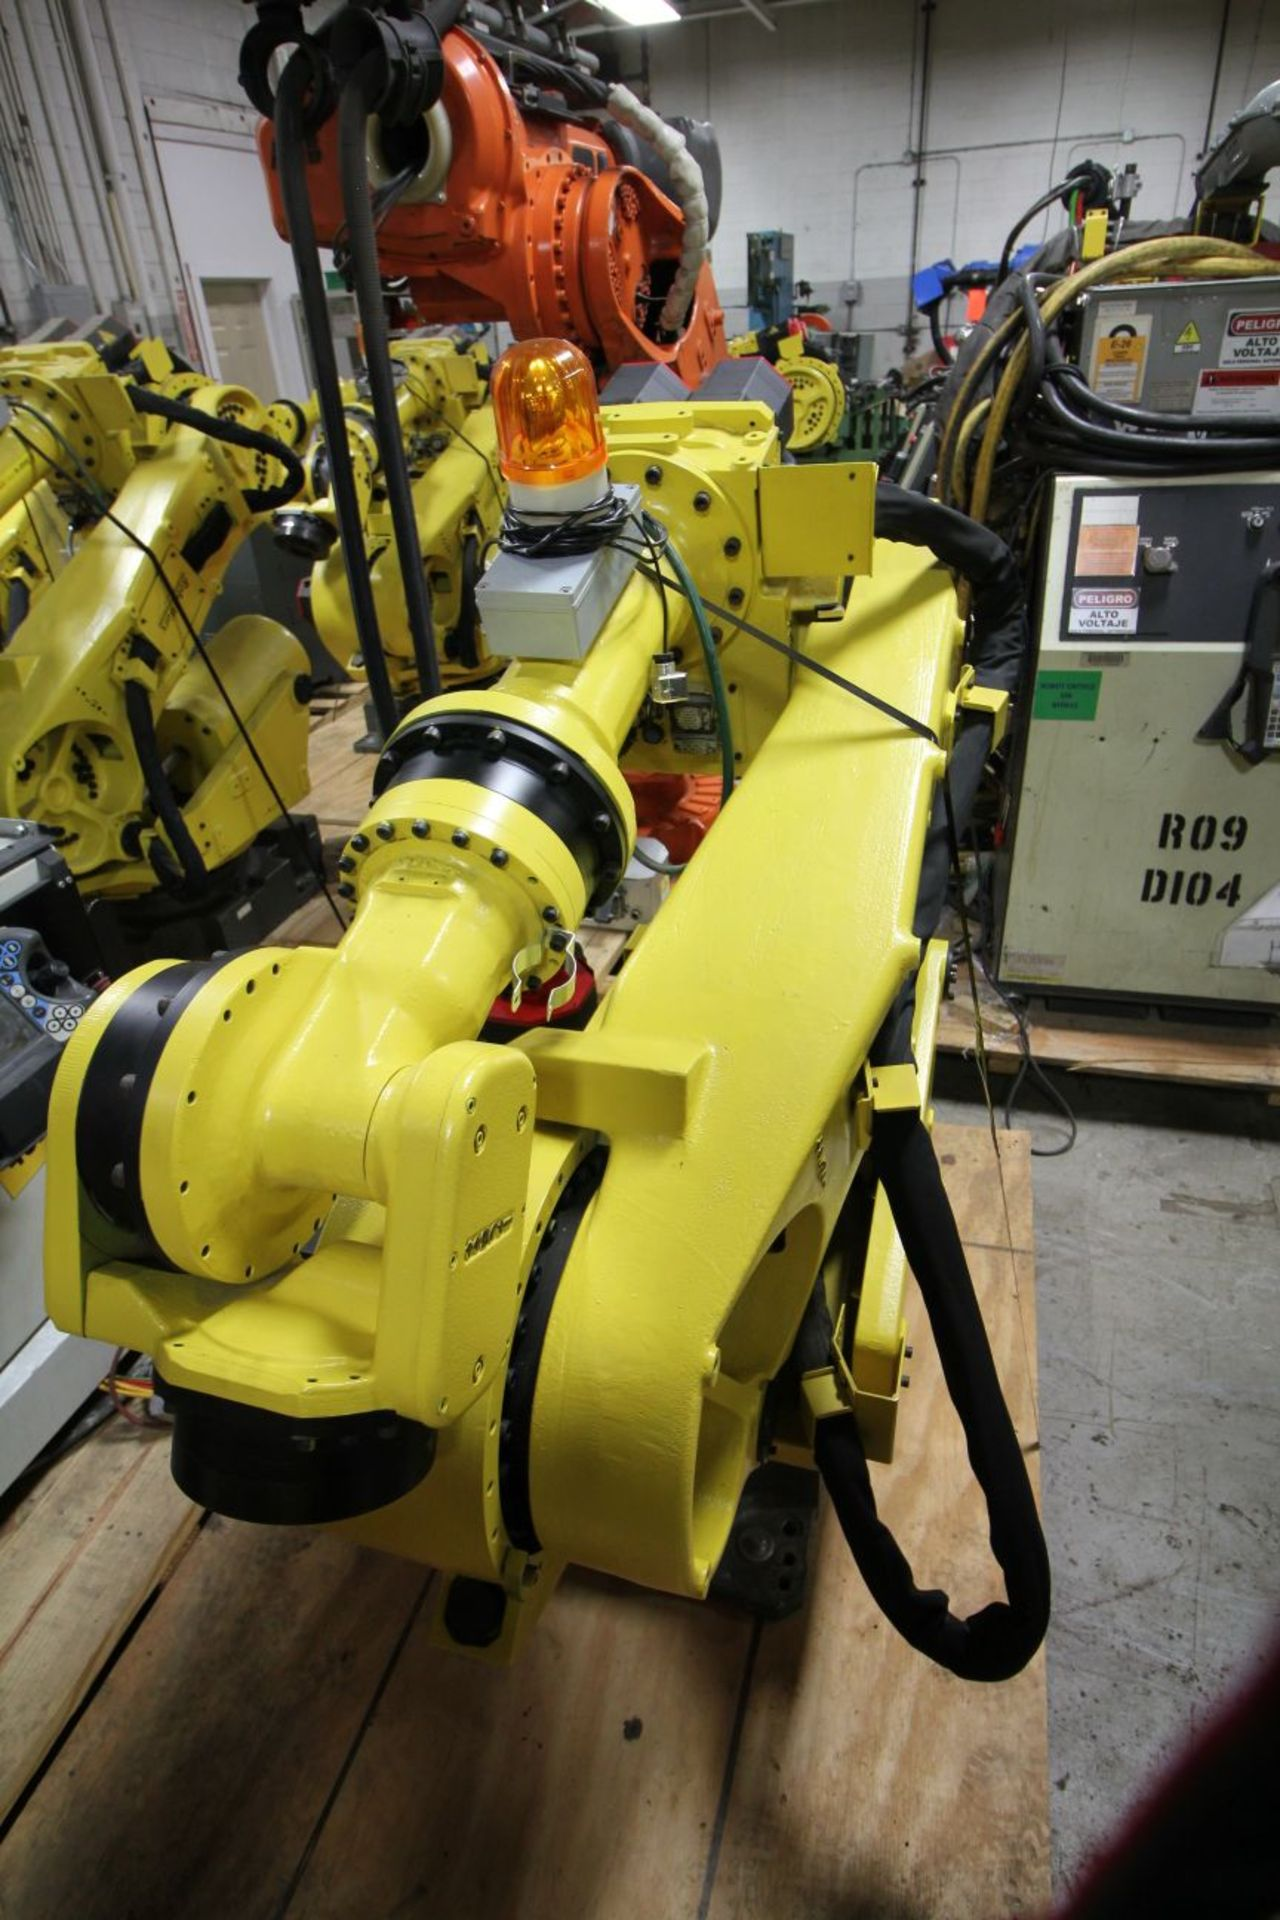 Lot 39 - FANUC ROBOT R2000iA/200FO WITH R-J3iB CONTROLS, TEACH & CABLES, YEAR 2003, SN 805283, COMP REFURBED